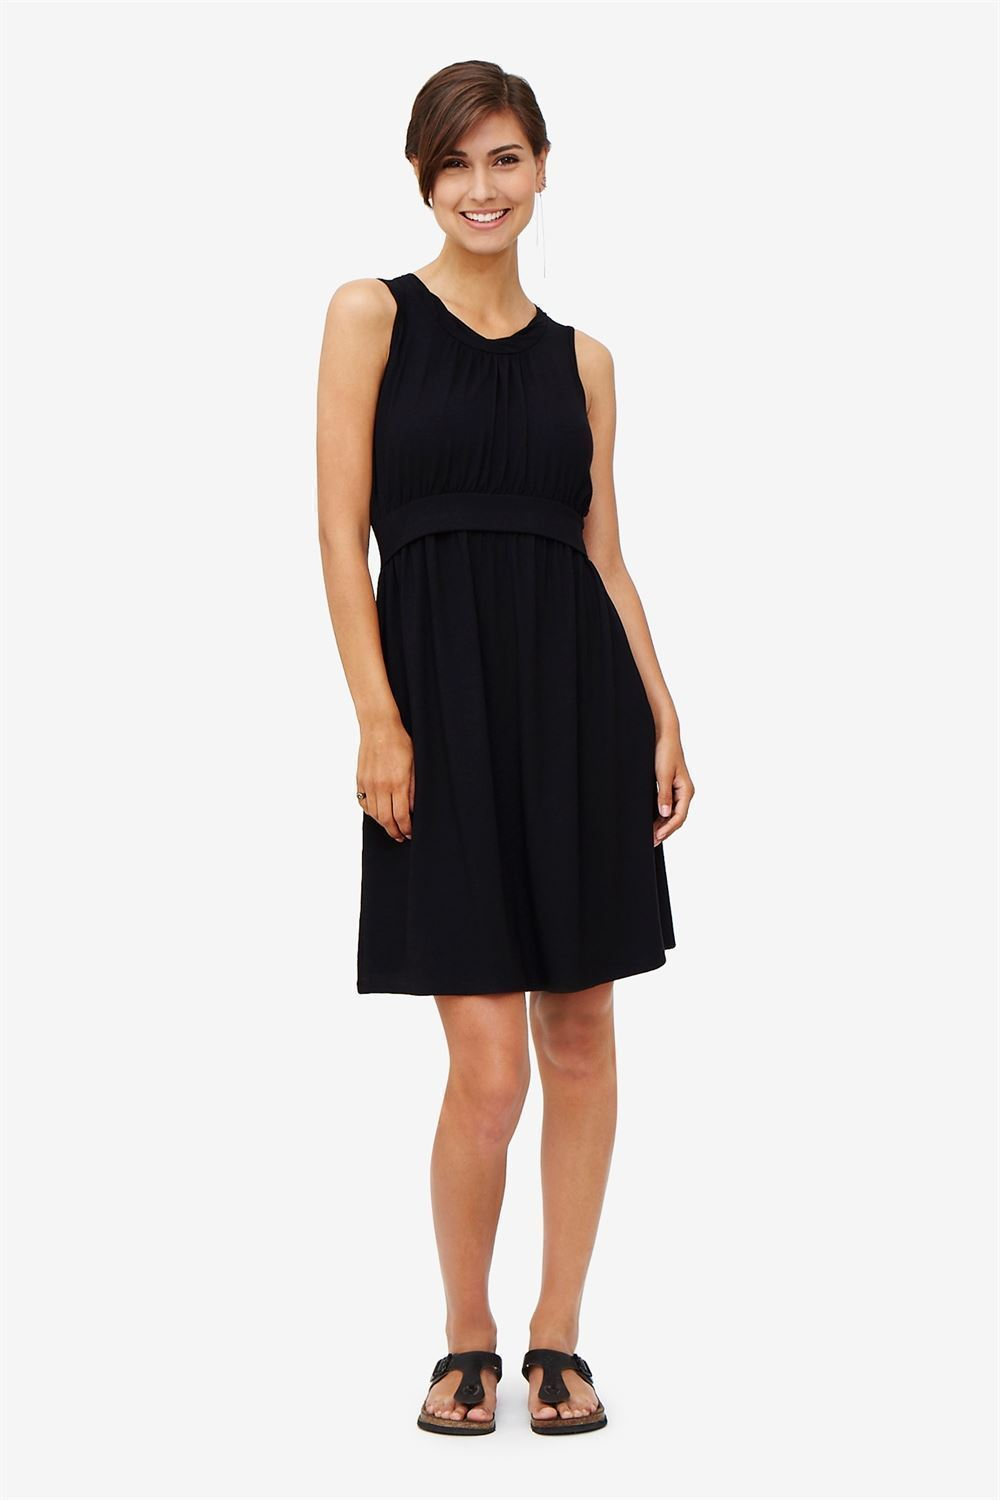 Black sleeveless nursing dress – knee-length in bamboo fibers - full figur